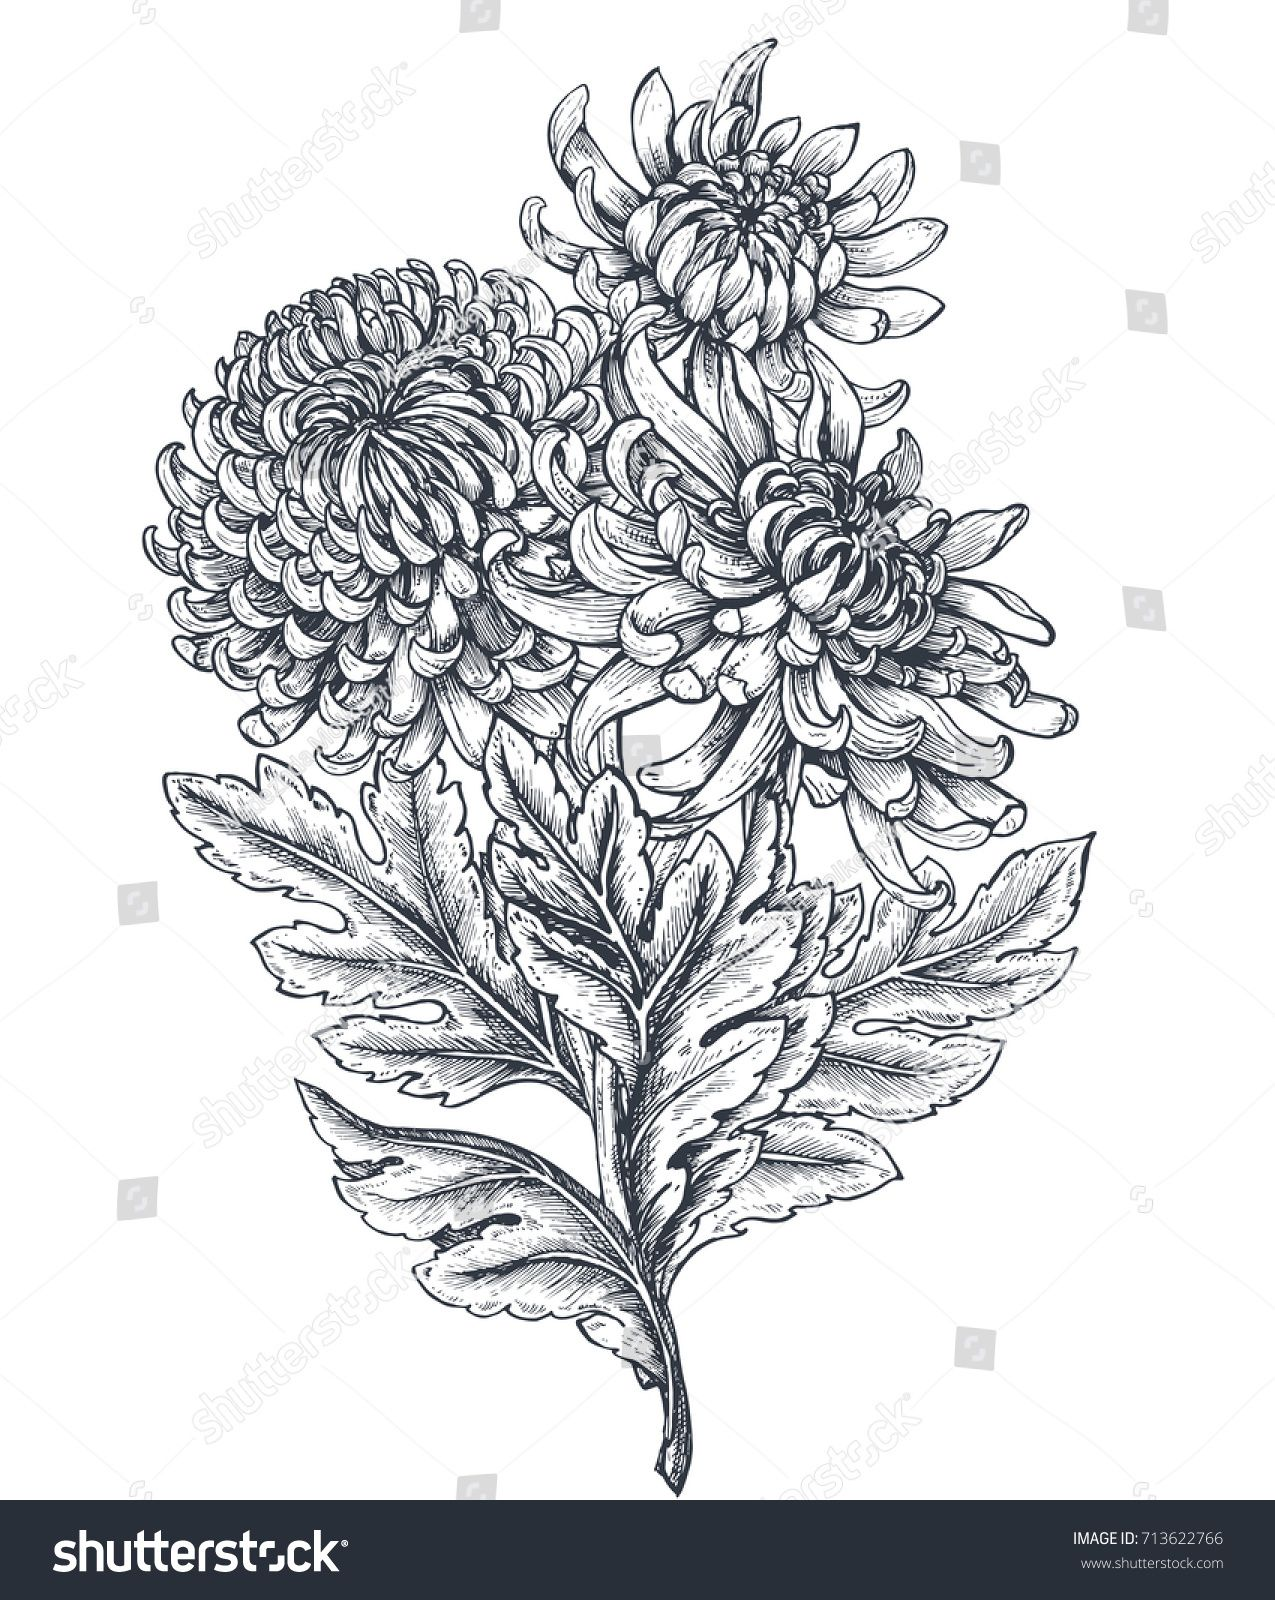 Vector bouquet with black and white hand drawn